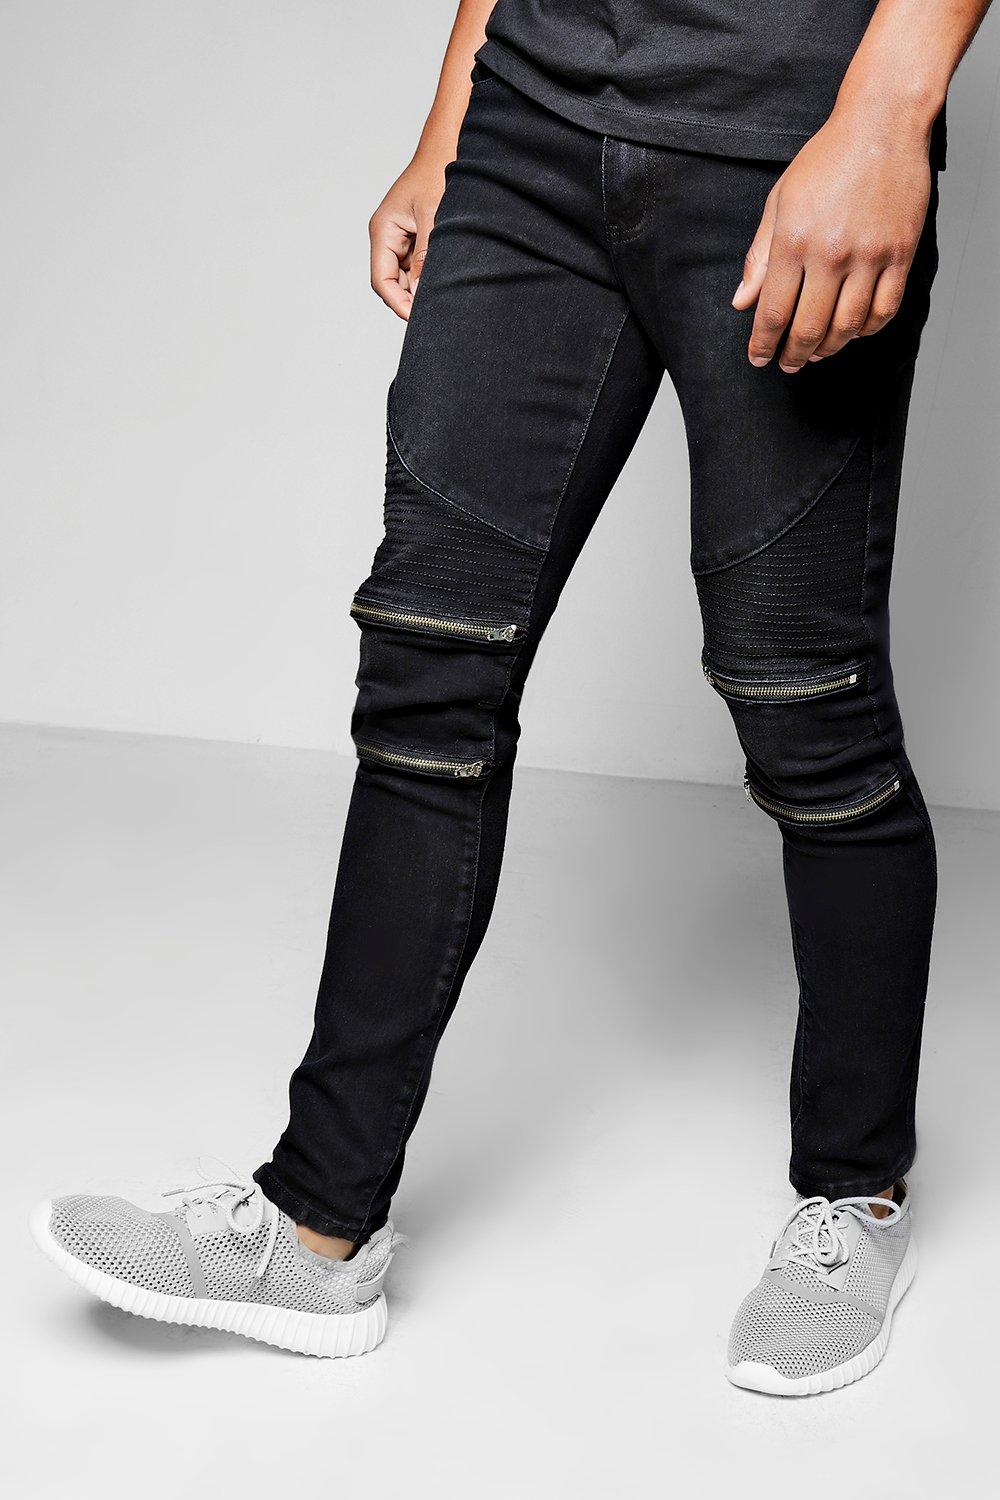 catch customers first special selection of Skinny Fit Zip Knee Biker Jeans | Boohoo